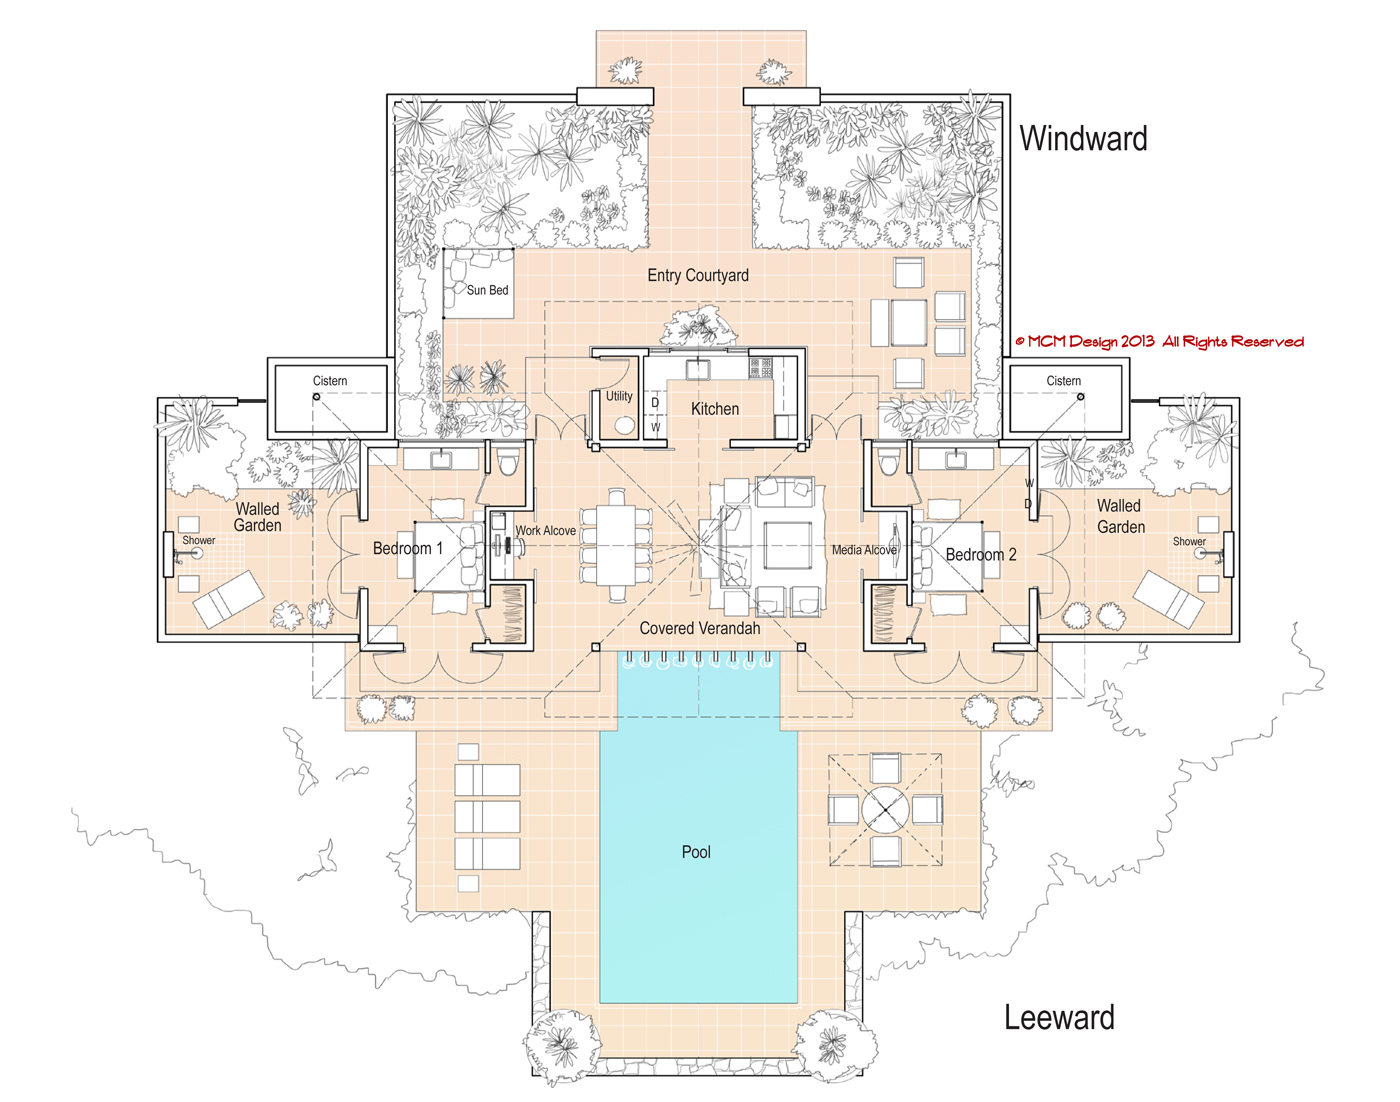 Mcm design minimum island house plan Home layout